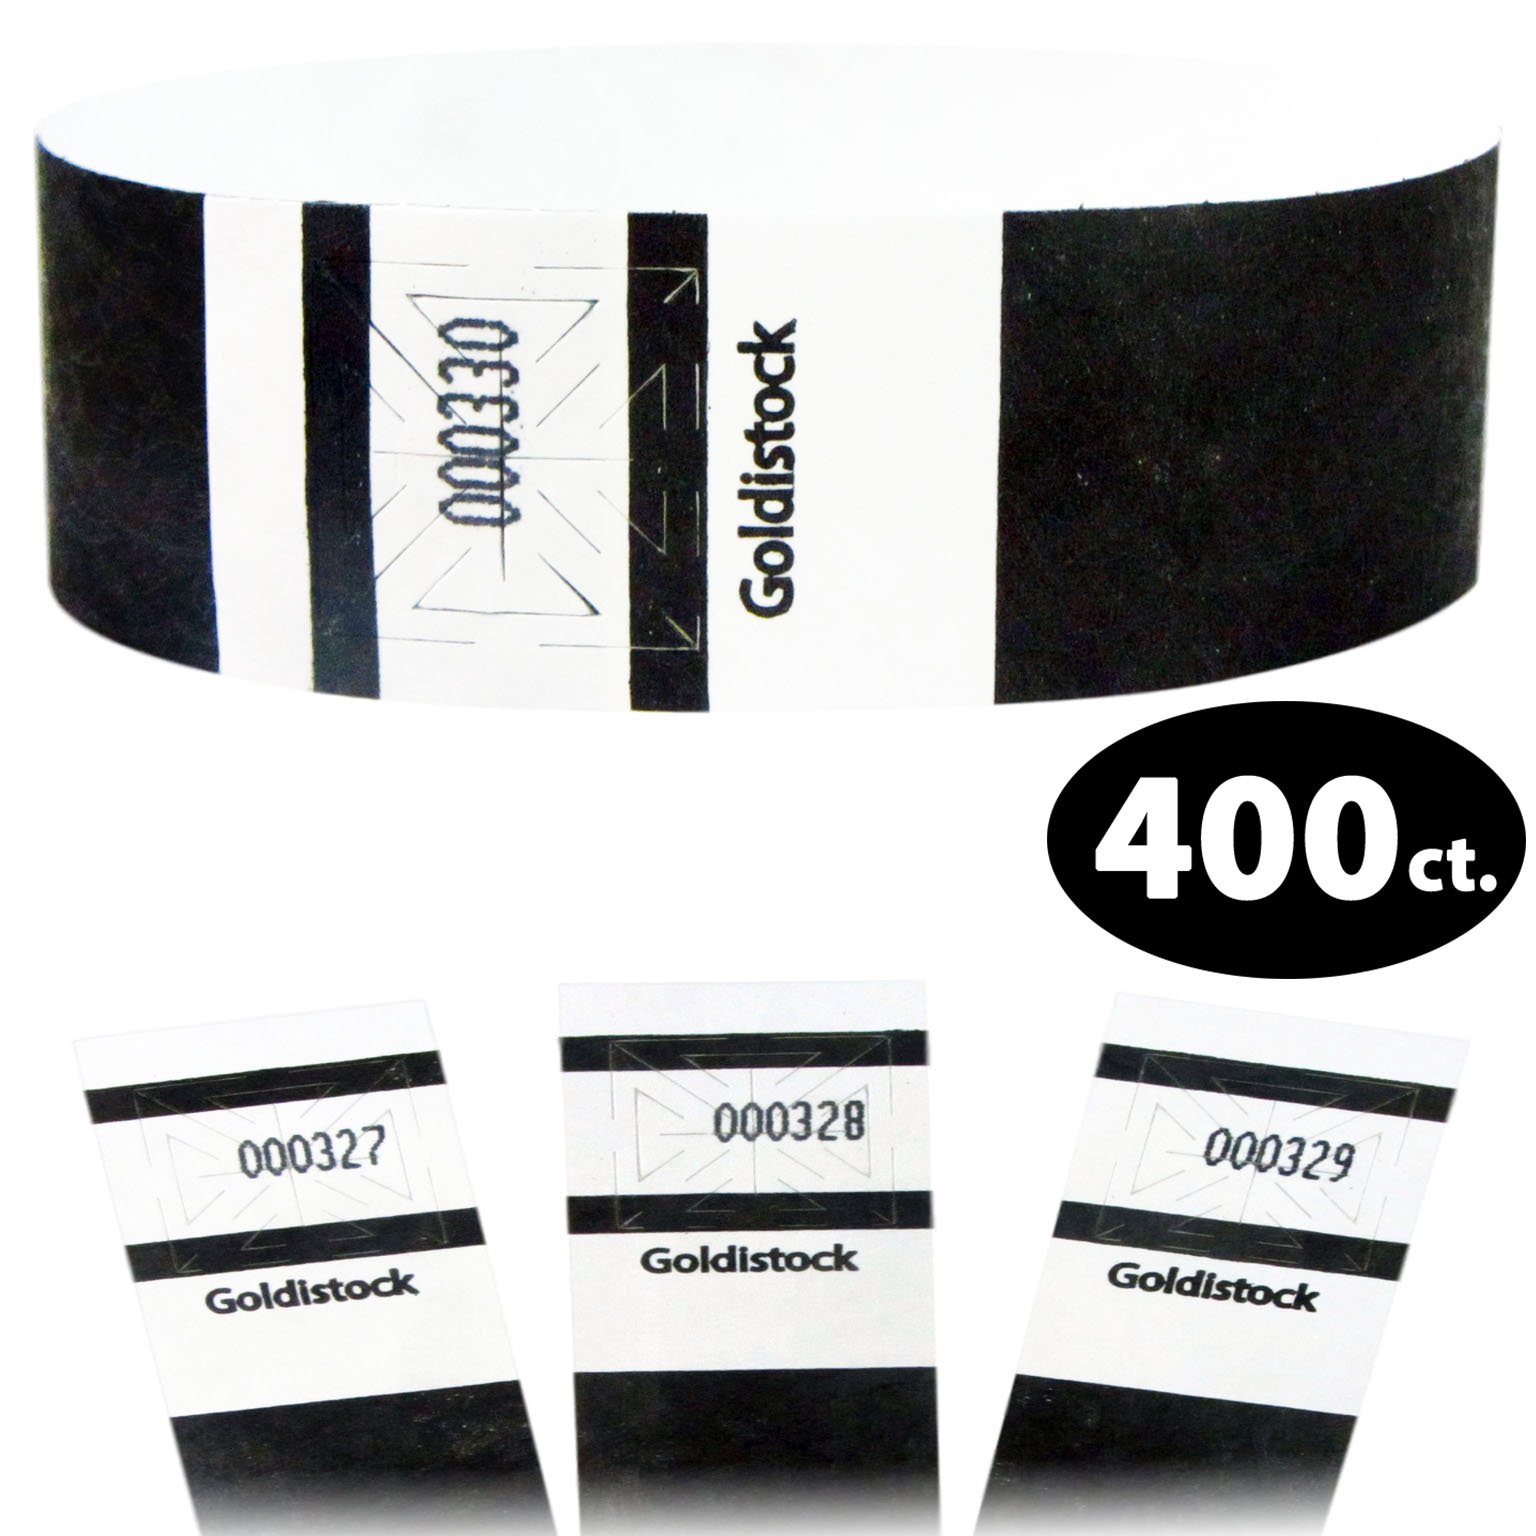 Goldistock Maximum Security One Inch Tyvek Wristbands Select Series Formal Deep Black 400 Count - Event Identification Bands (Paper - Like Texture)